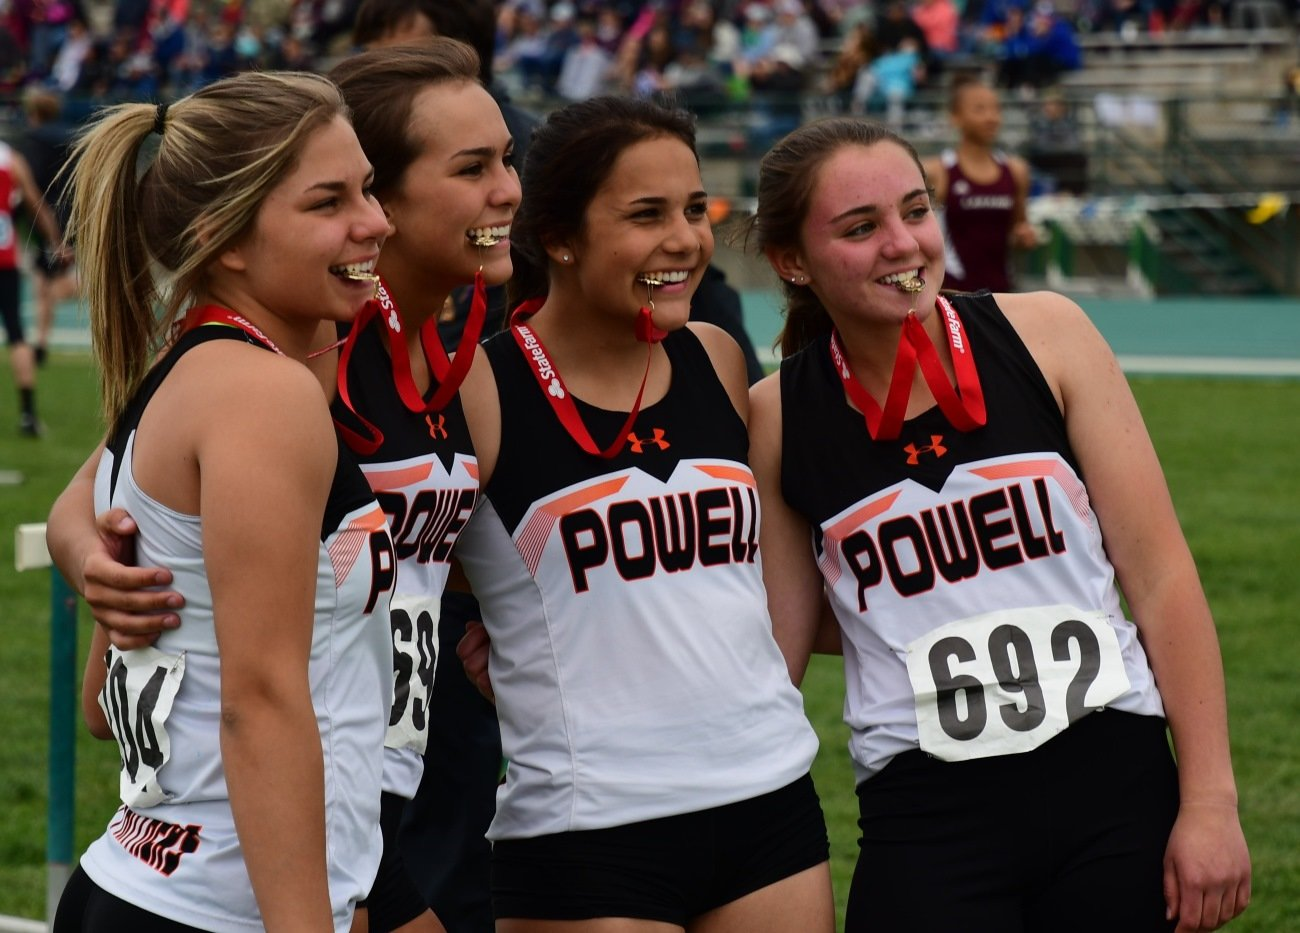 The 4x100 relay team of (from left) Caitlyn Miner, Jaz Haney, Emma Karhu and Jayden Asher are all smiles as the pose with their championship medals at the 3A Track and Field Championships on Friday.